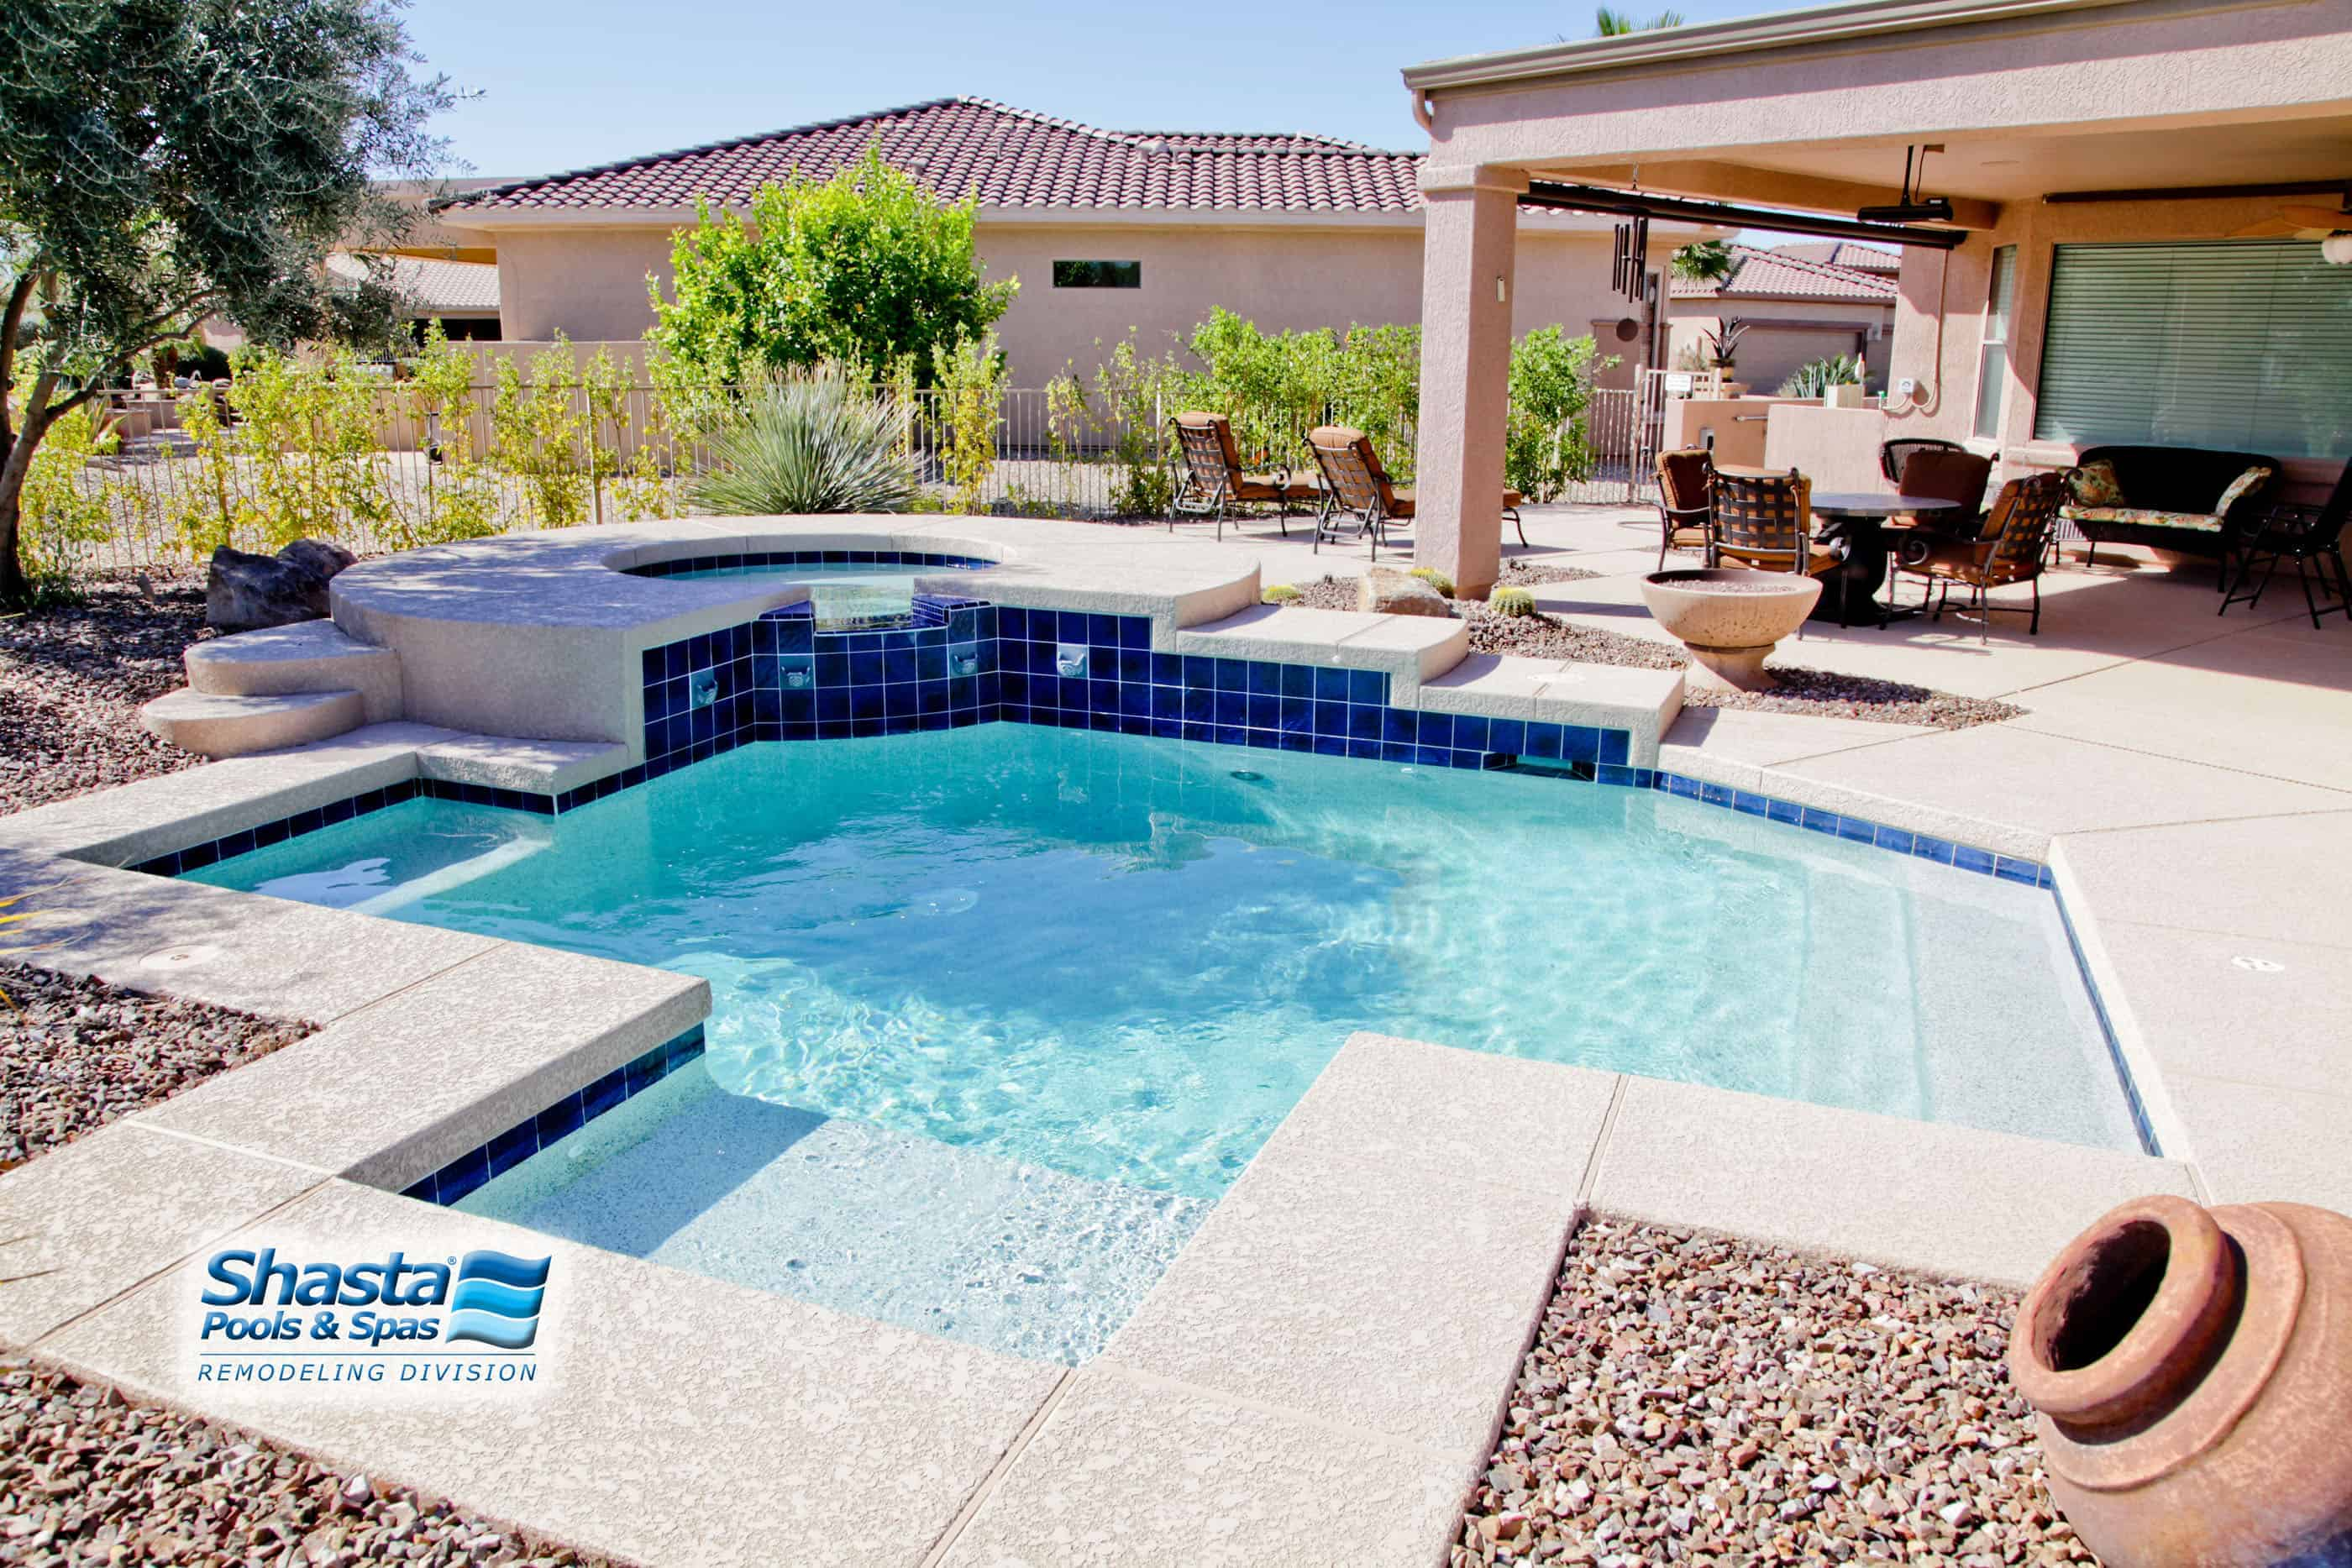 Swimming Pool Renovation Ideas : Pool remodeling phoenix mesa arizona shasta pools and spas